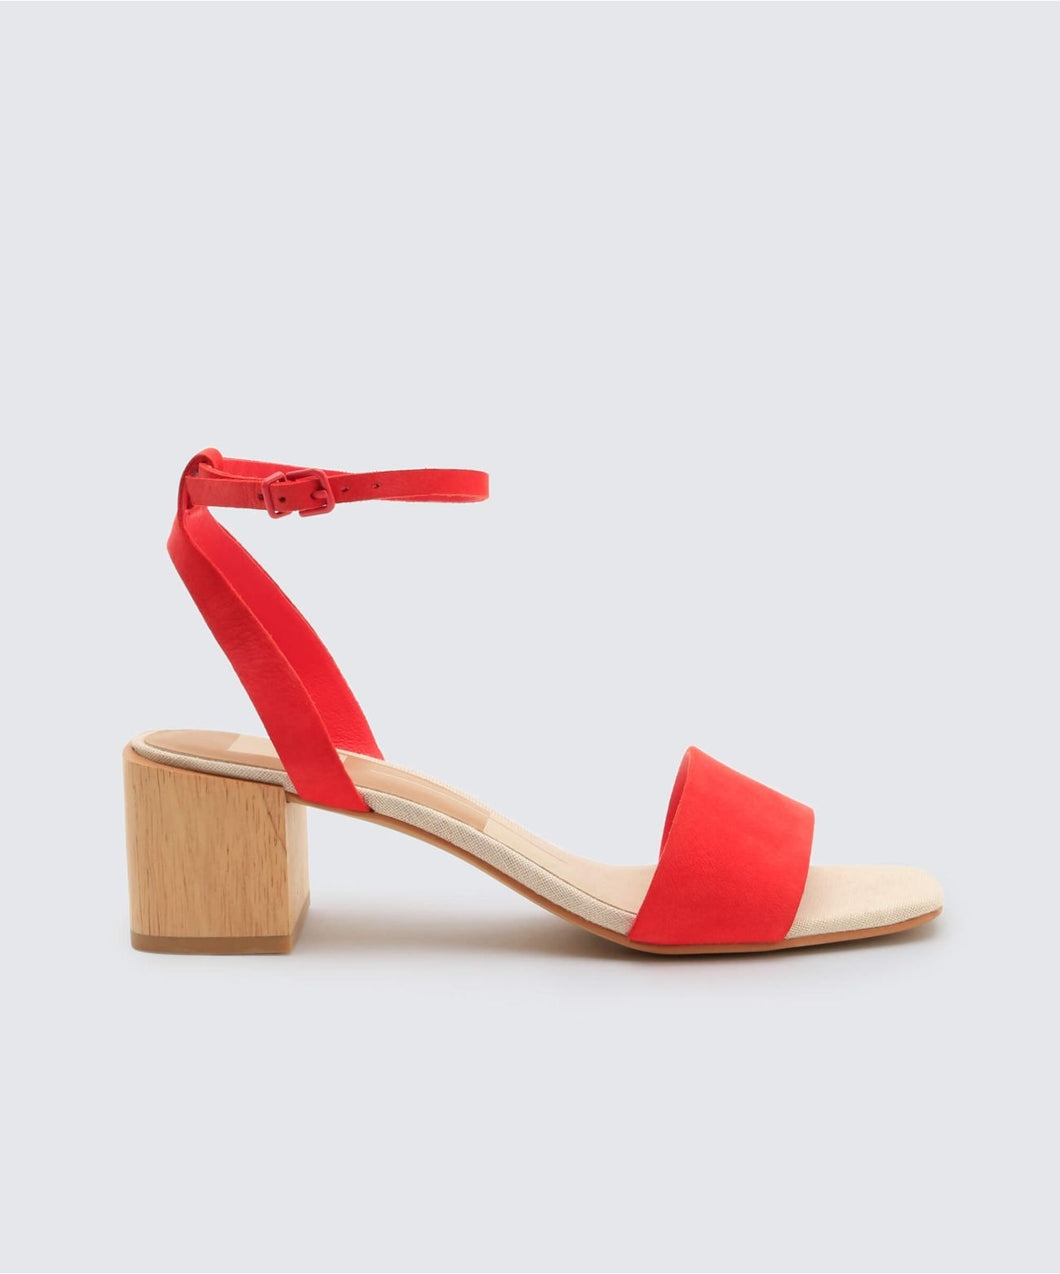 ZARITA SANDALS IN RED -   Dolce Vita